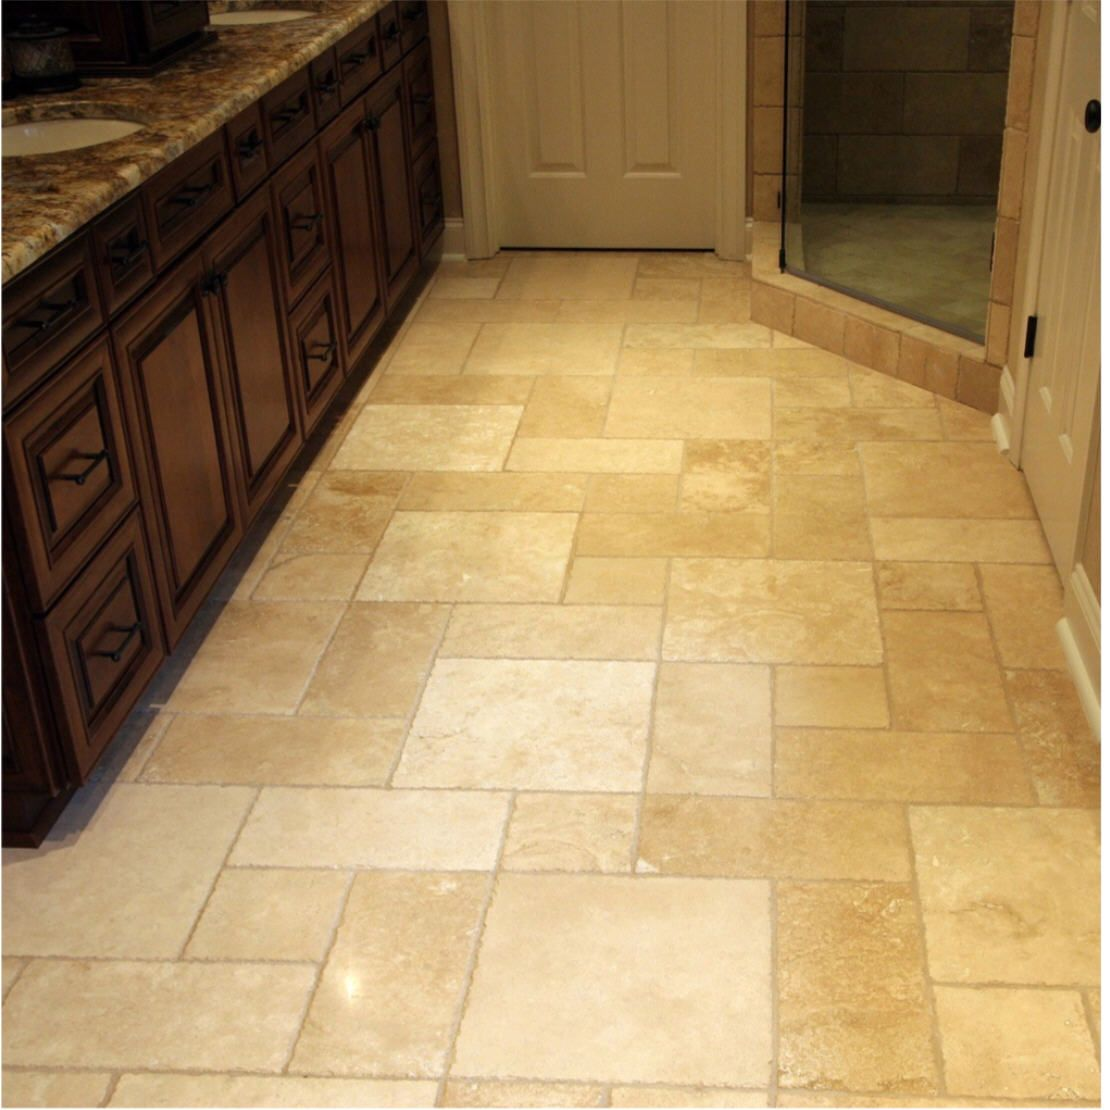 Travertine tile floor pattern called hopscotch for Travertine tile designs